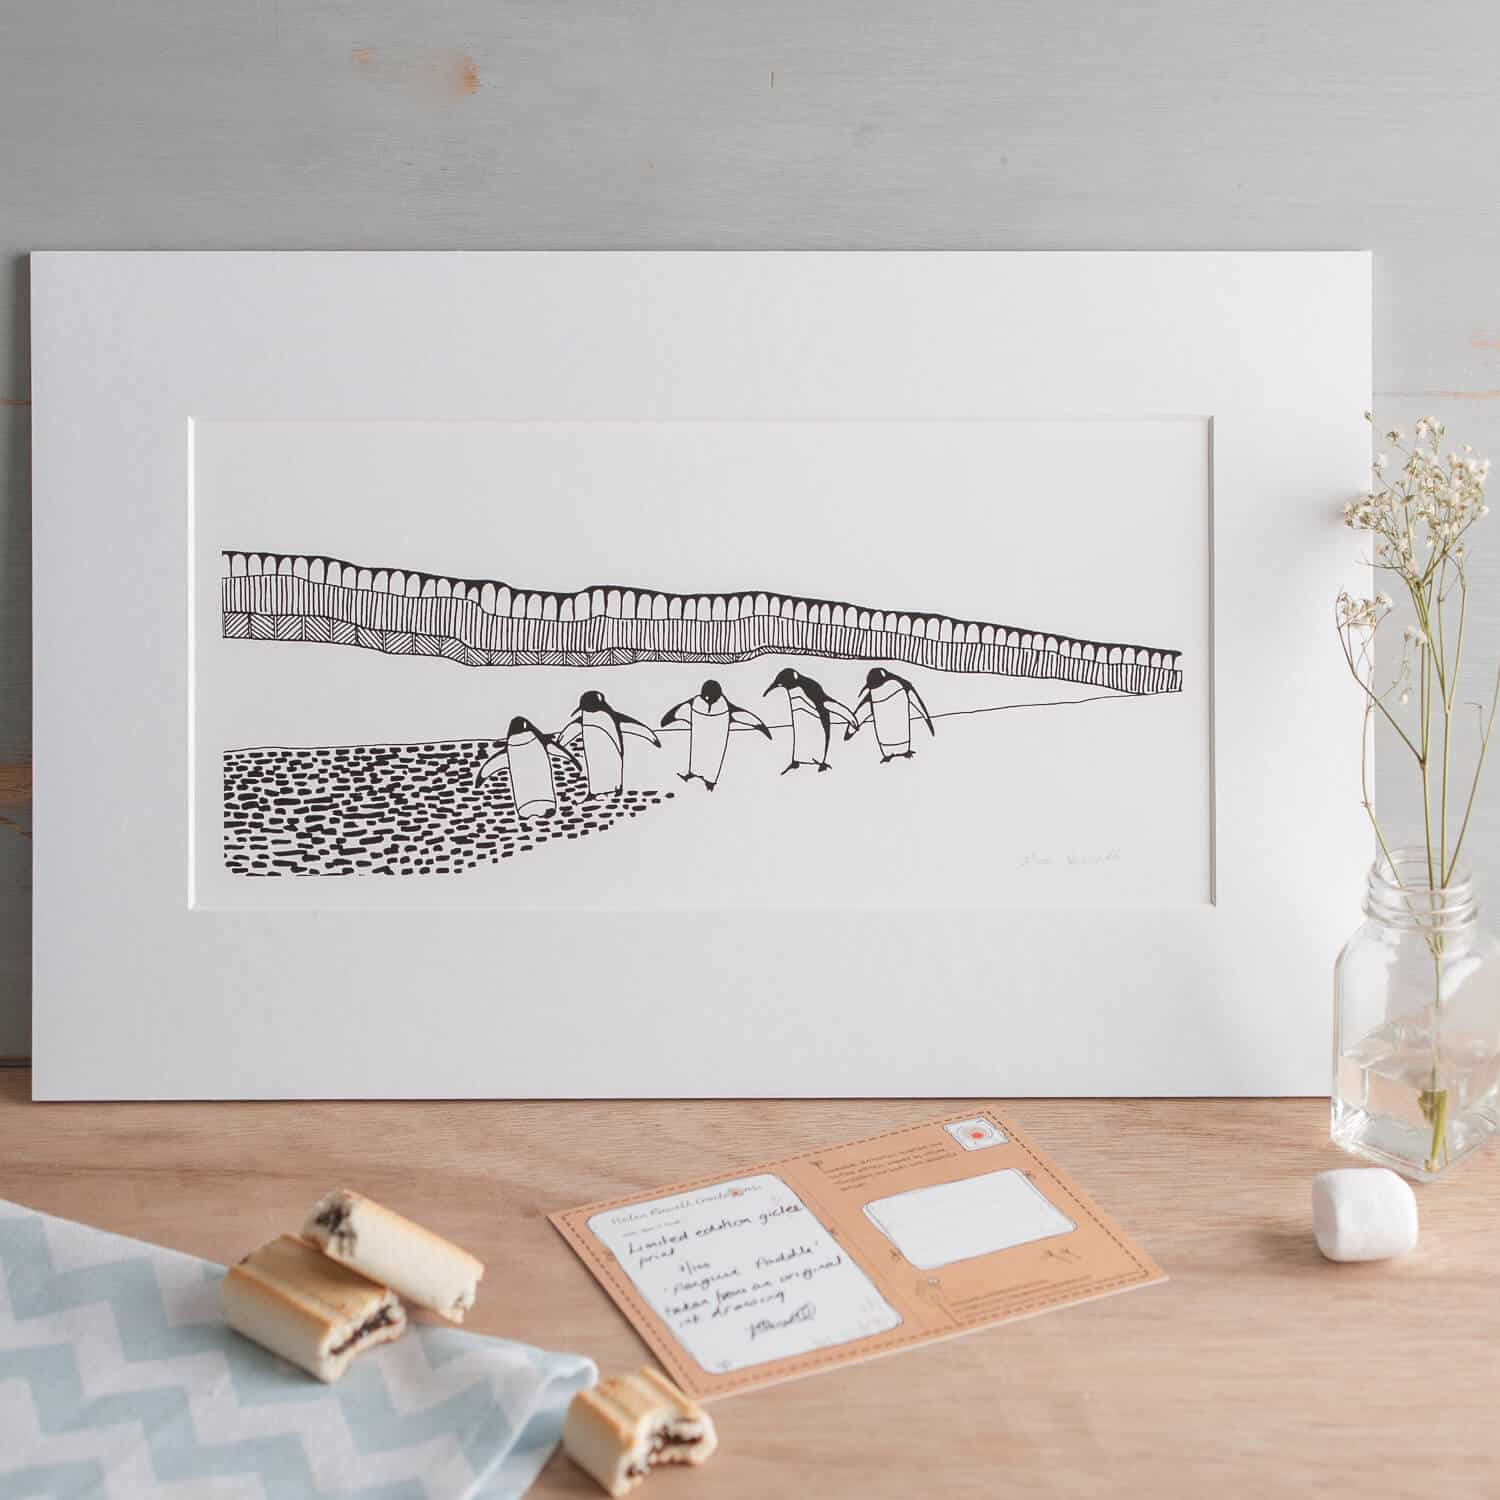 Creative designer Helen Russell's print photographed with gysophilia